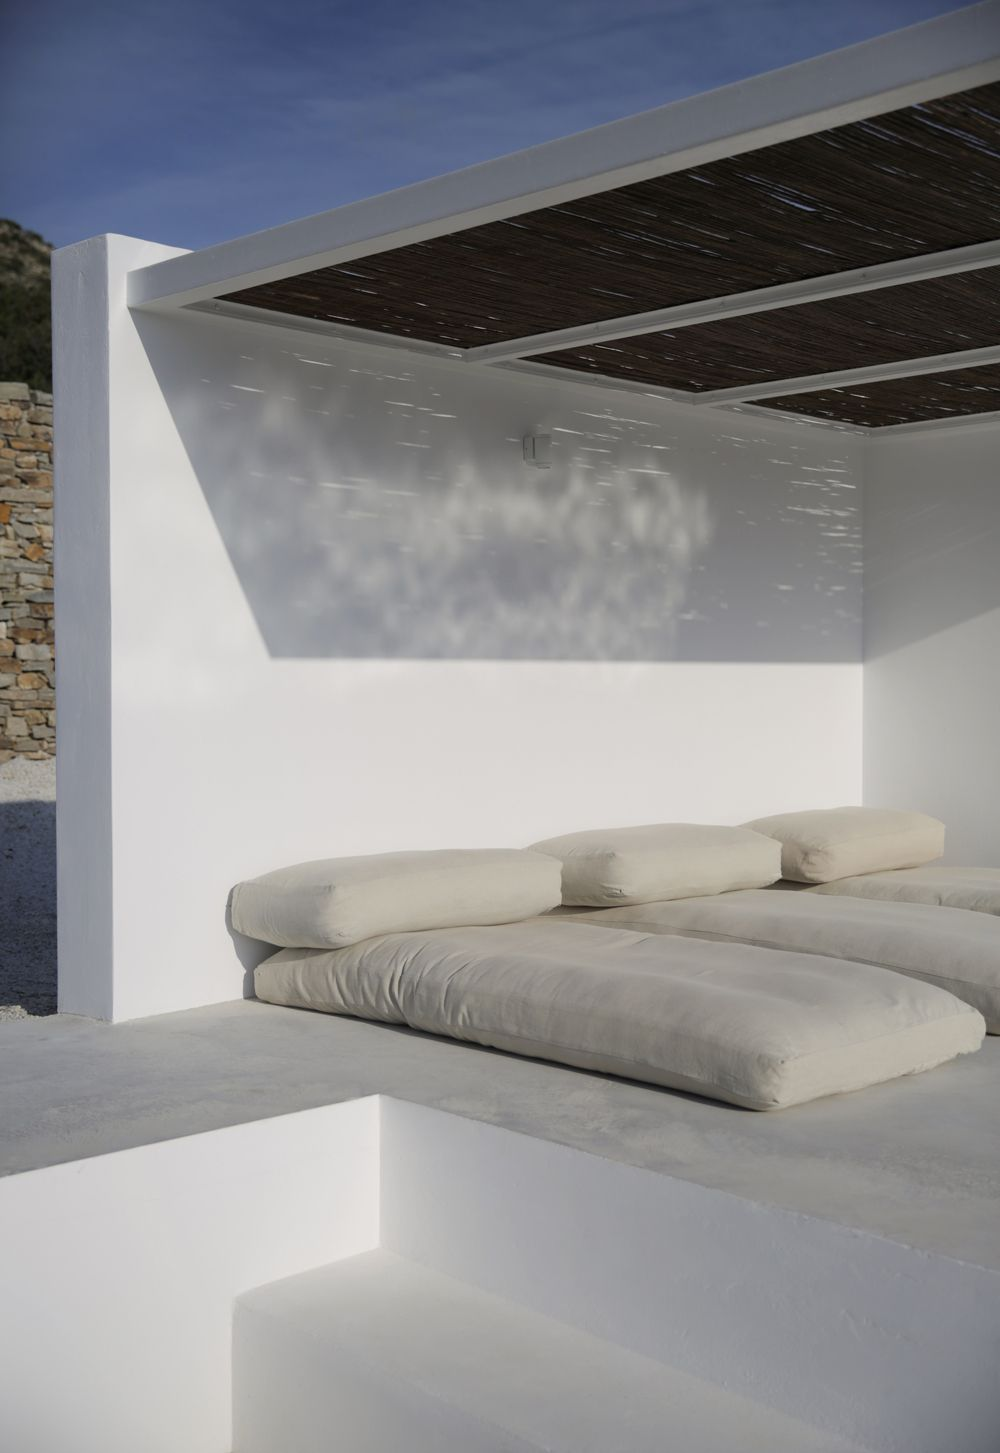 Santorini Patio Furniture: Maison Kamari En 2019